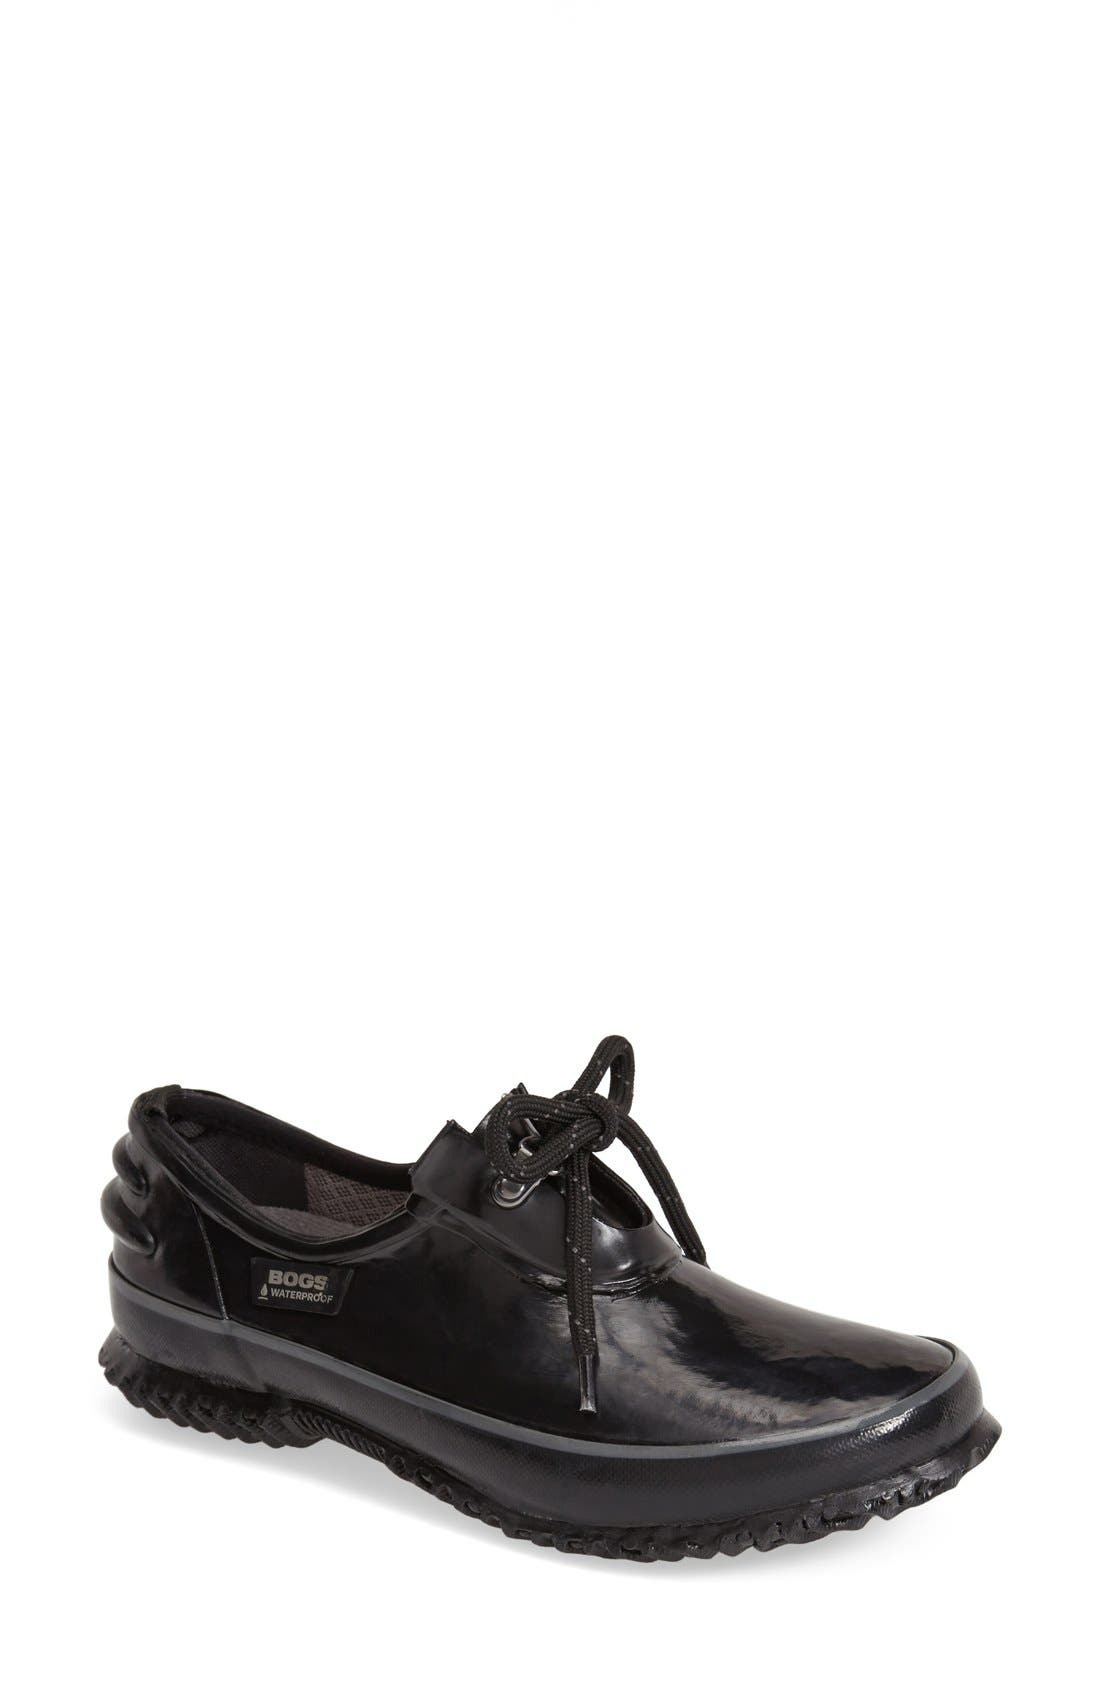 BOGS 'Urban Farmer' Waterproof Oxford